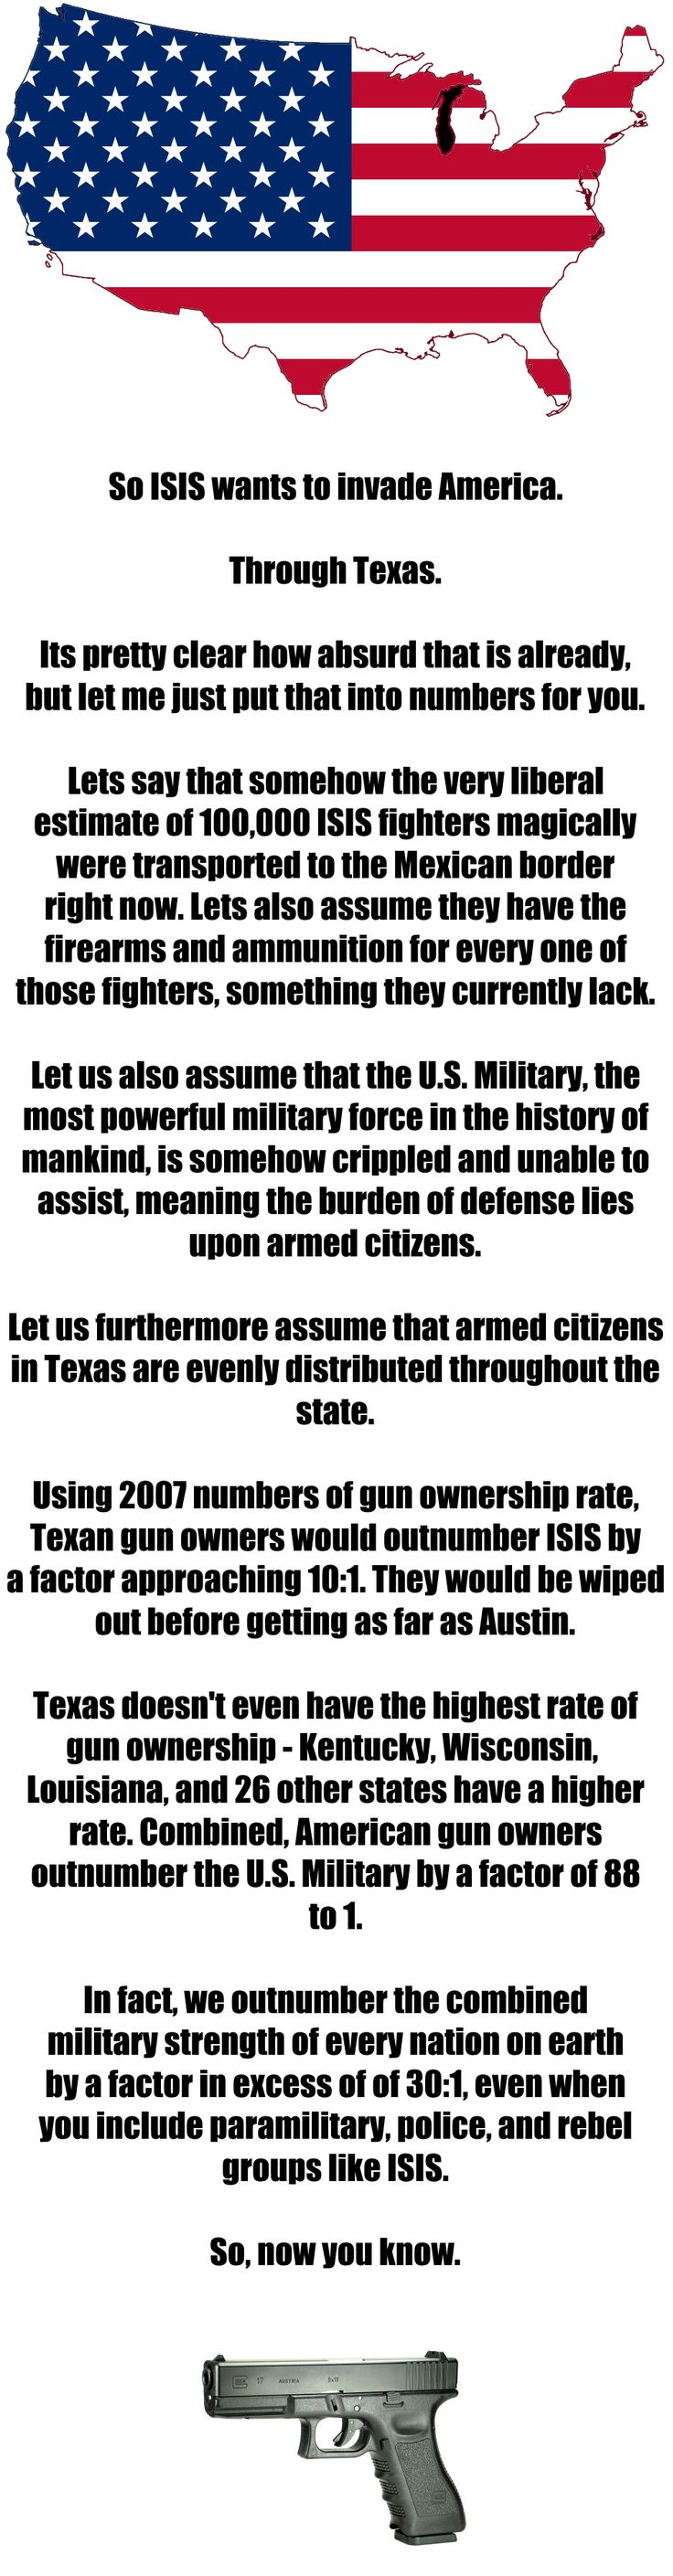 So ISIS wants to invade, do they?